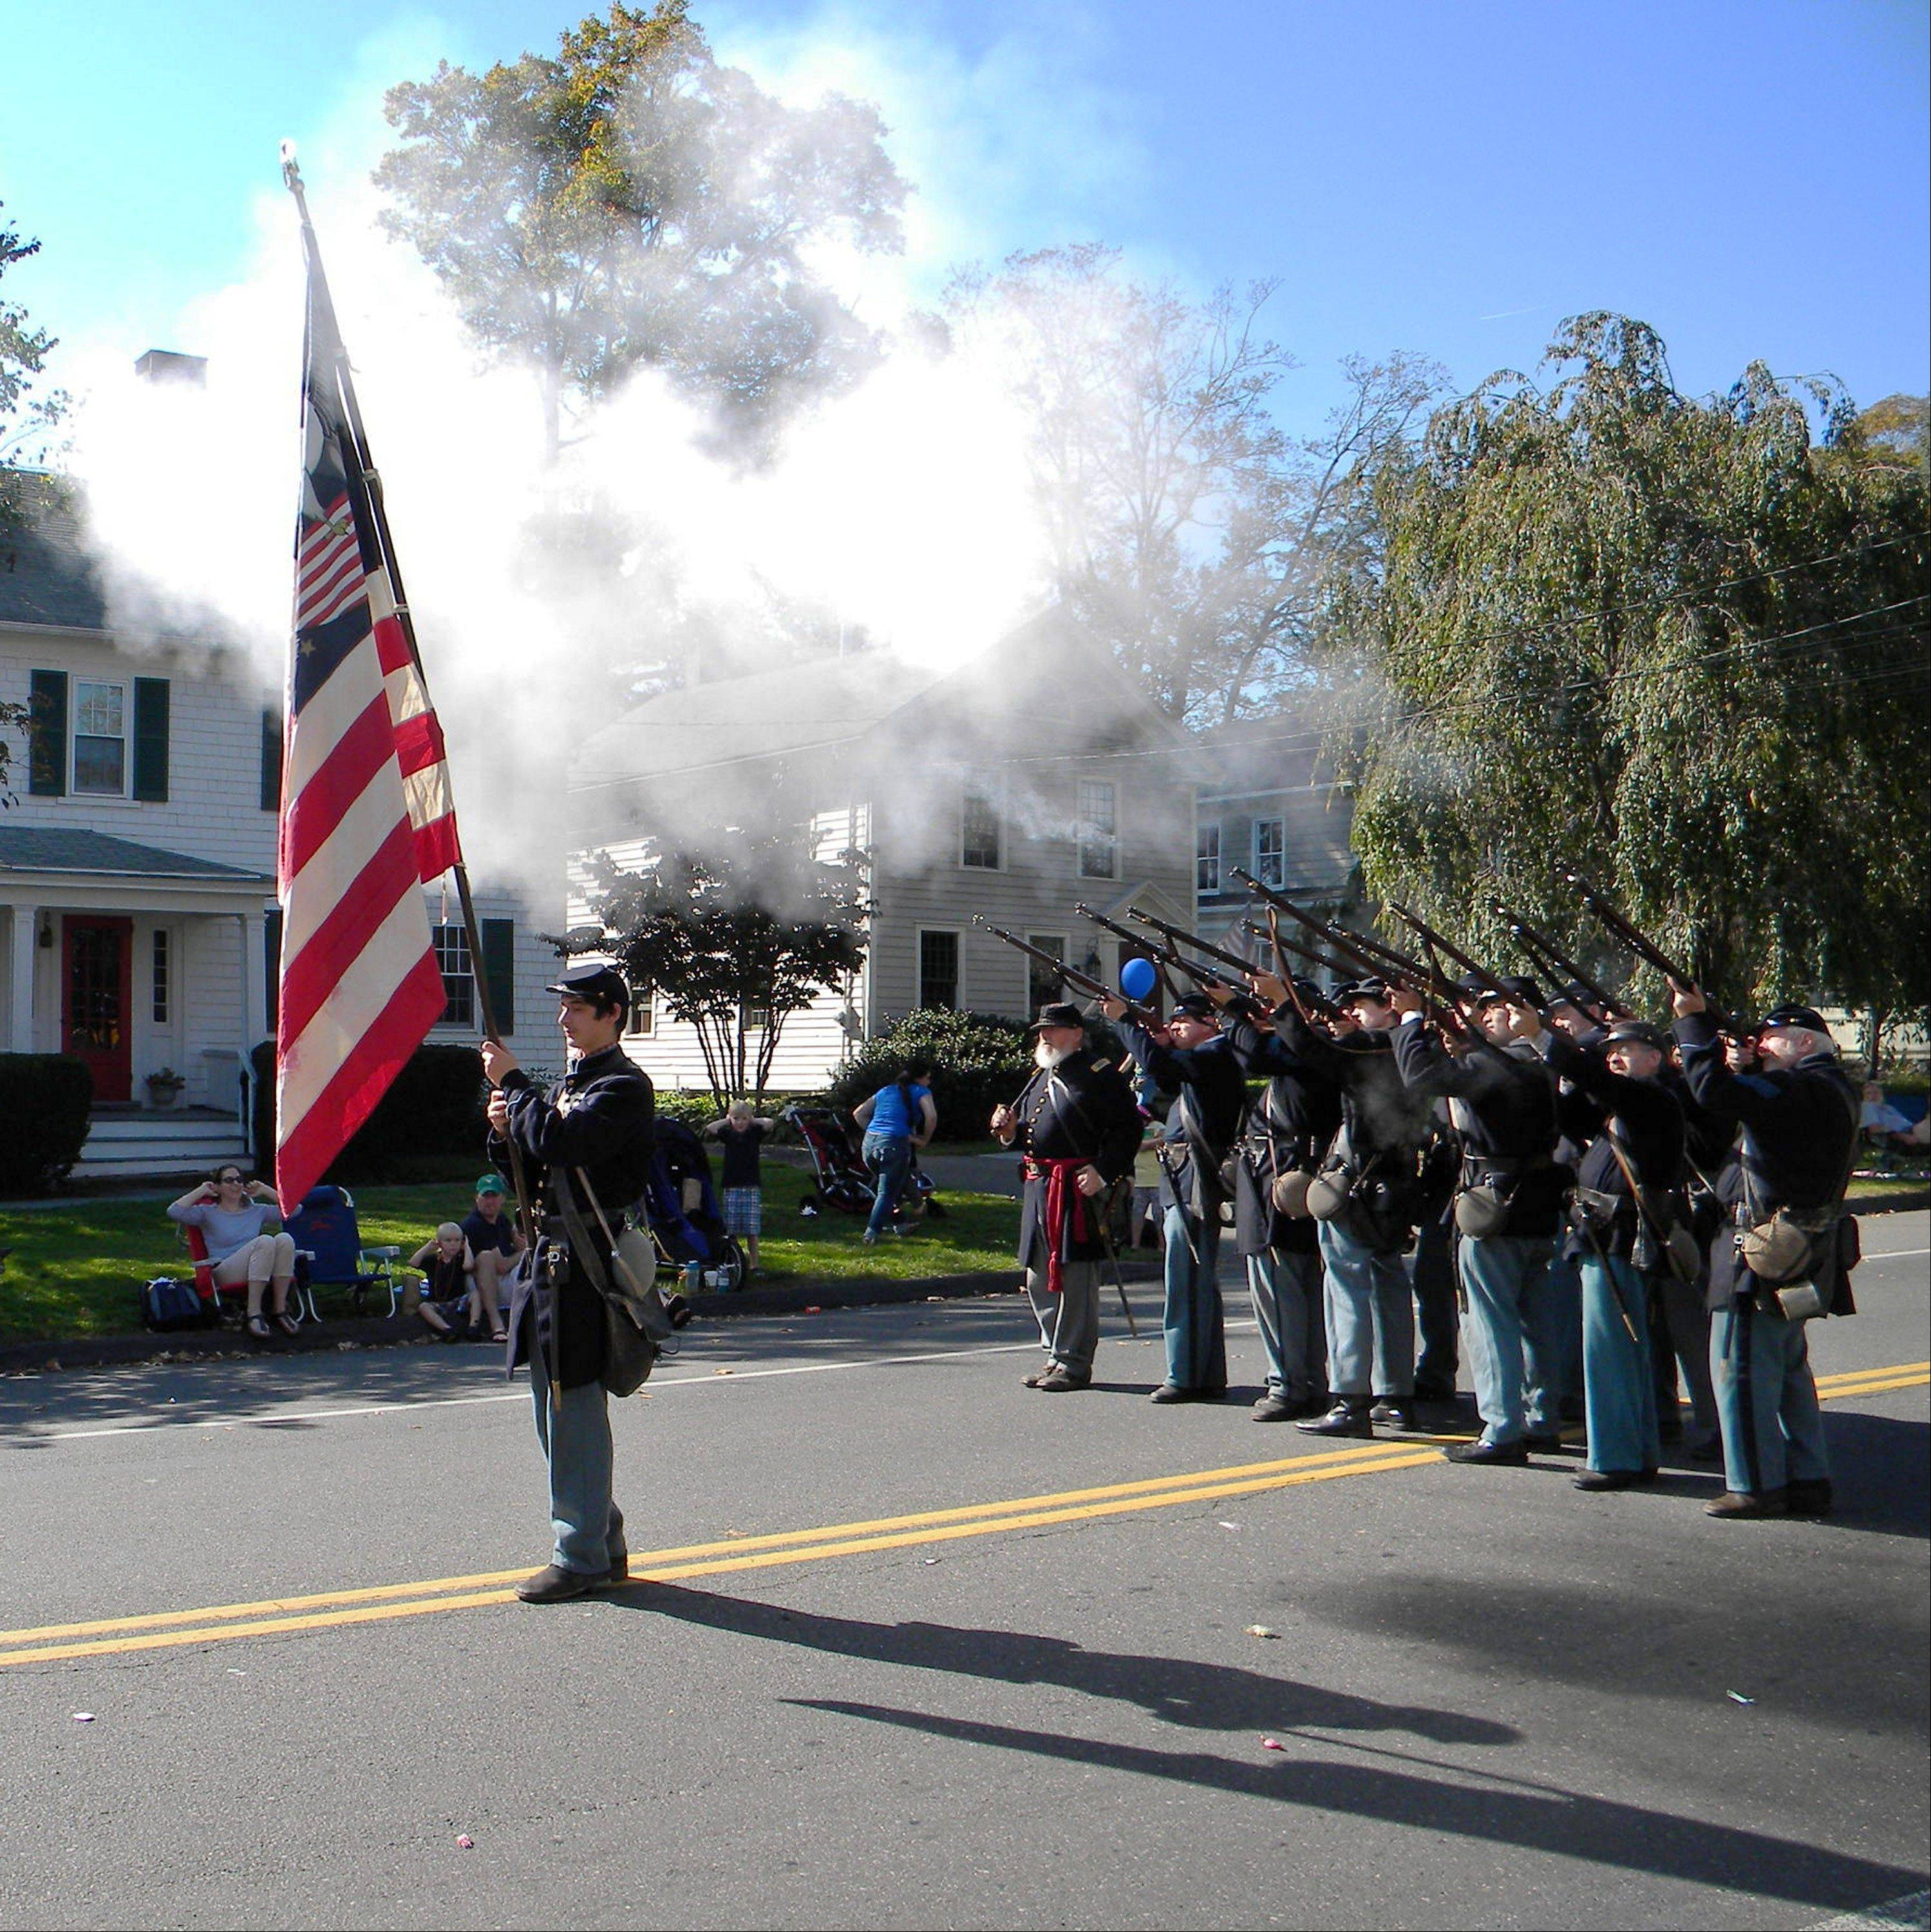 "Civil War re-enactors fire a salute as spectators cover their ears during the Labor Day parade in Newtown, Conn. The 11th Connecticut Volunteer Infantry, Company A will march again in the town's annual parade, but with black armbands and rifles pointed downward, a gesture of mourning, according to a father of a member of the unit. ""They had decided independently that they shouldn't be firing,"" Dan Cruson said, nearly nine months after shootings at Sandy Hook Elementary School left 26 dead, 20 of them children."